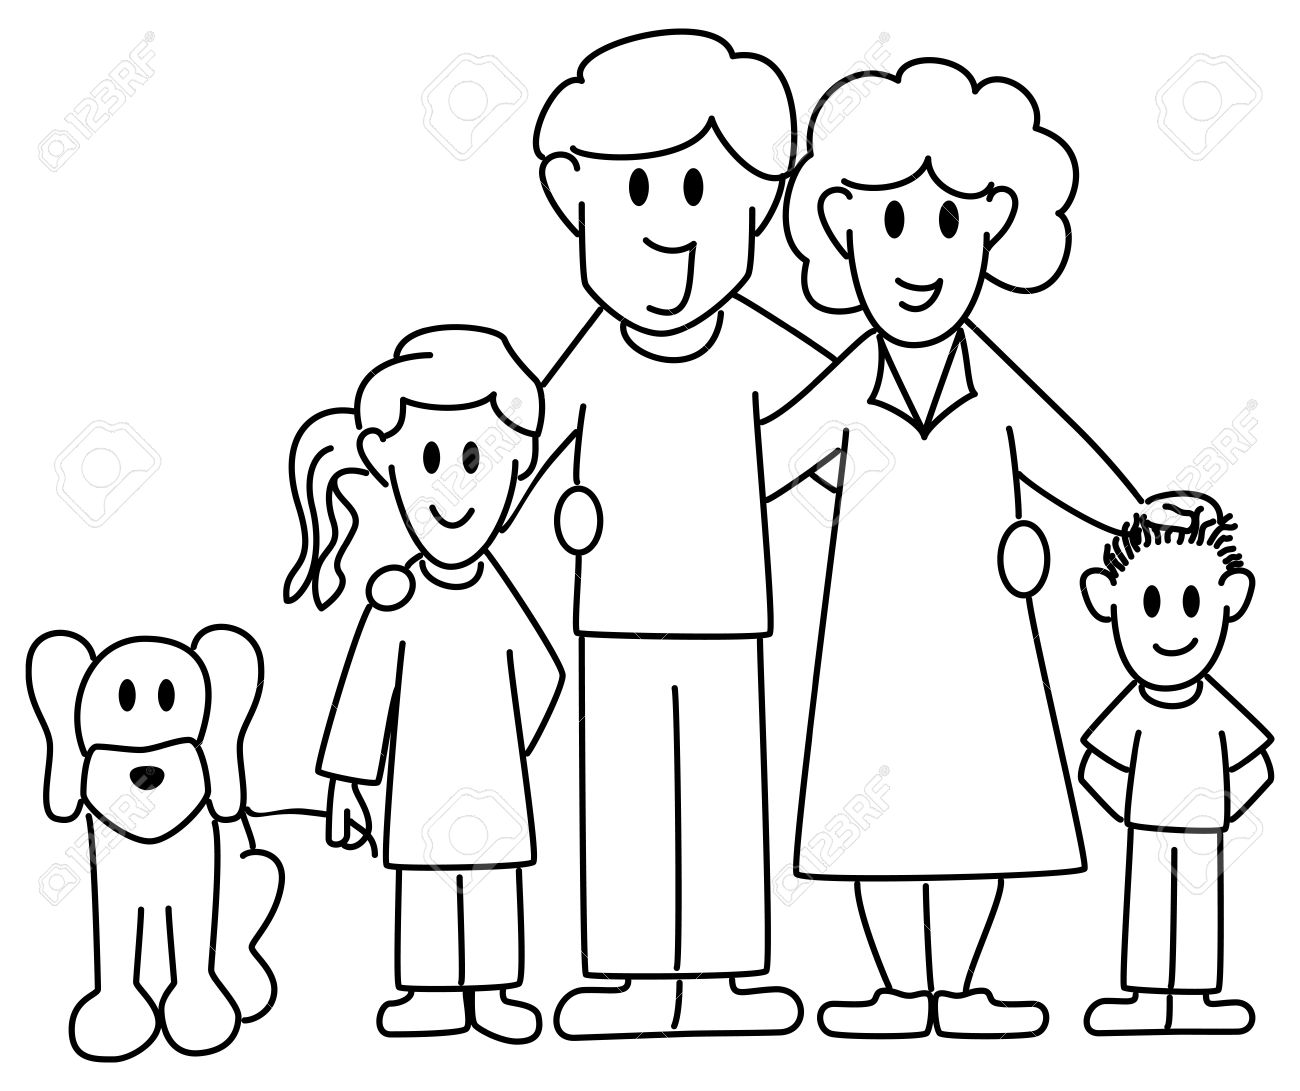 1300x1091 Vector Illustration Of A Family Consisting Father Mother